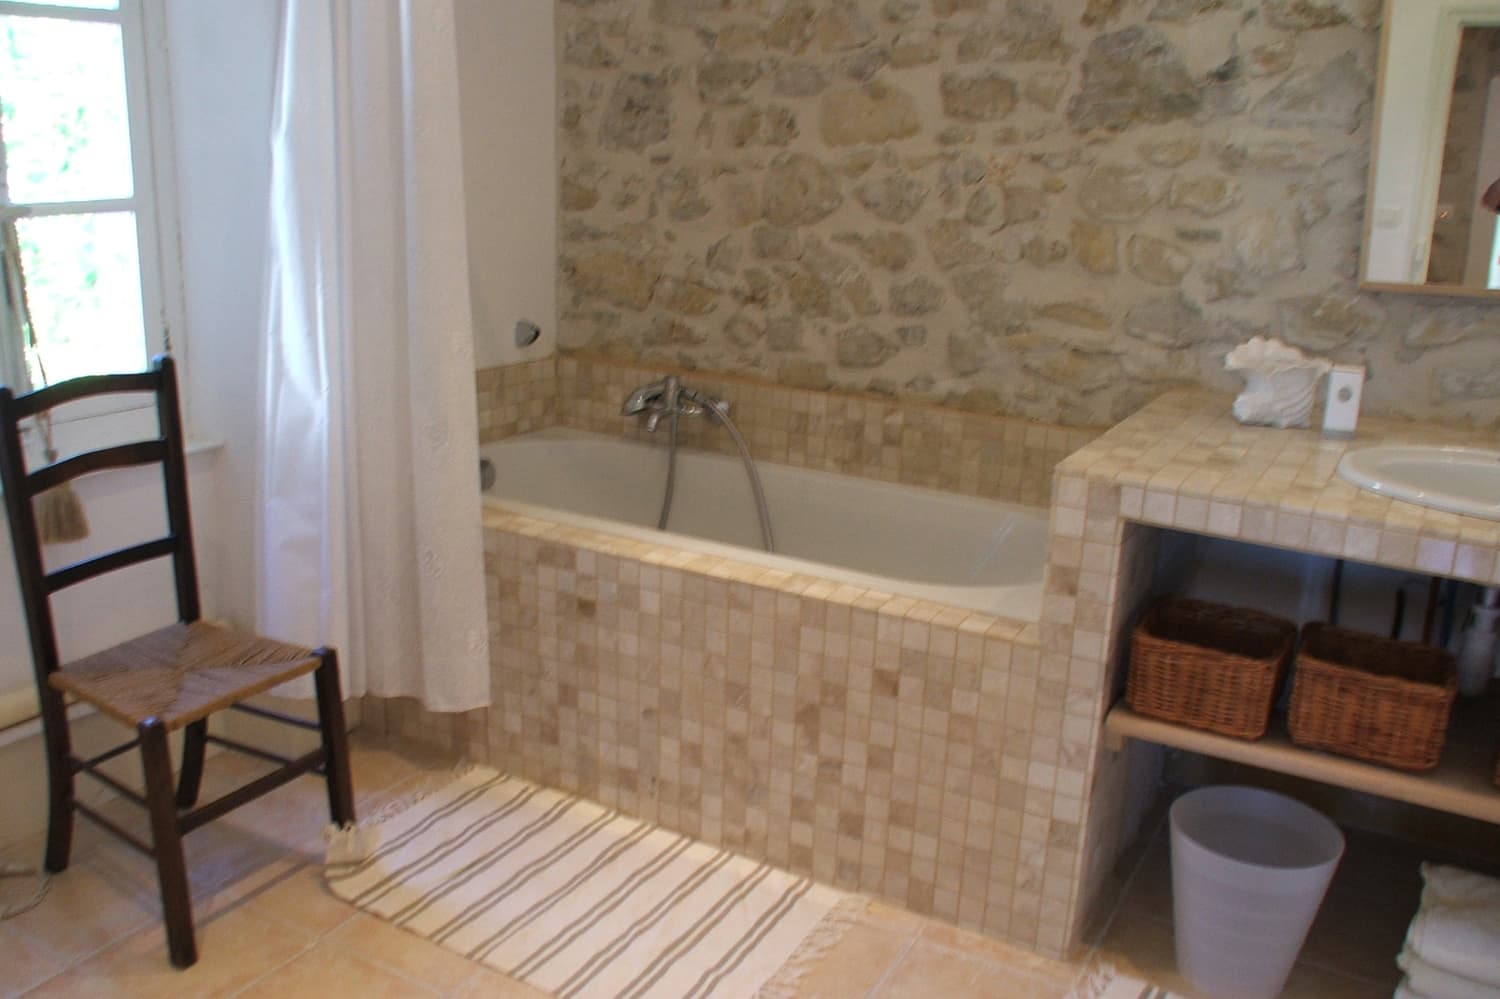 Bathroom in Boisset-et-Gaujac, Occitanie holiday accommodation